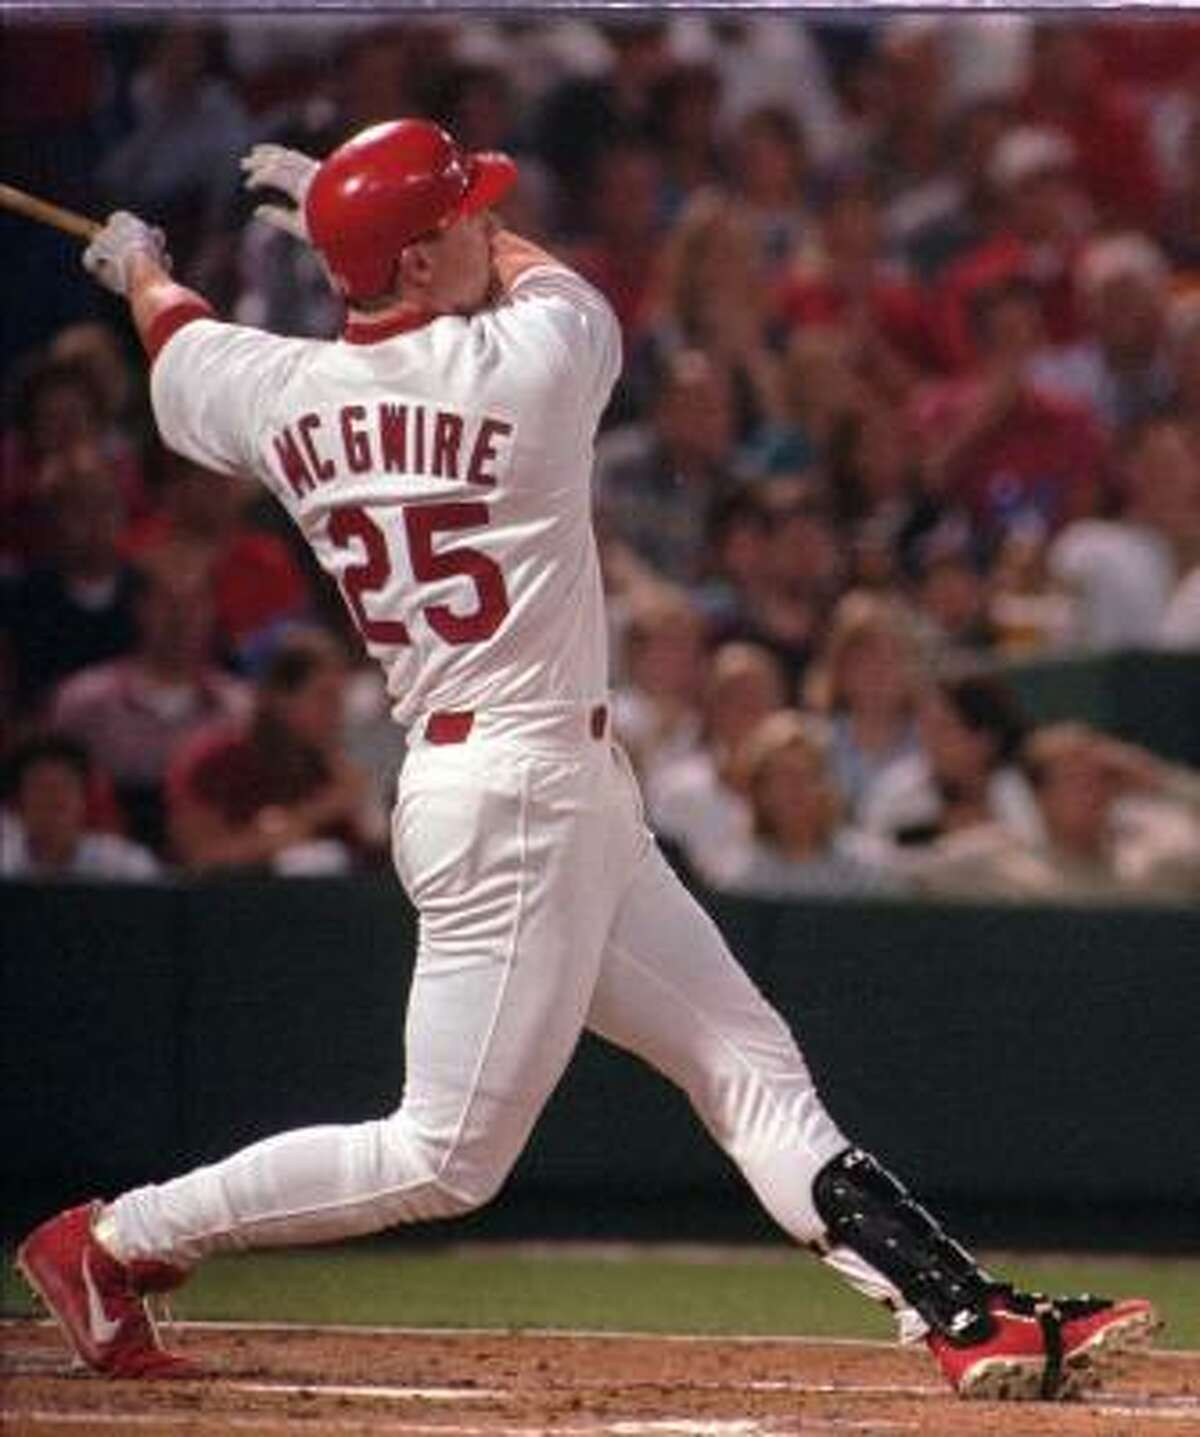 Mark McGwire set a record with 70 home runs in 1998 but has since become a central figure of the steroid investigation.